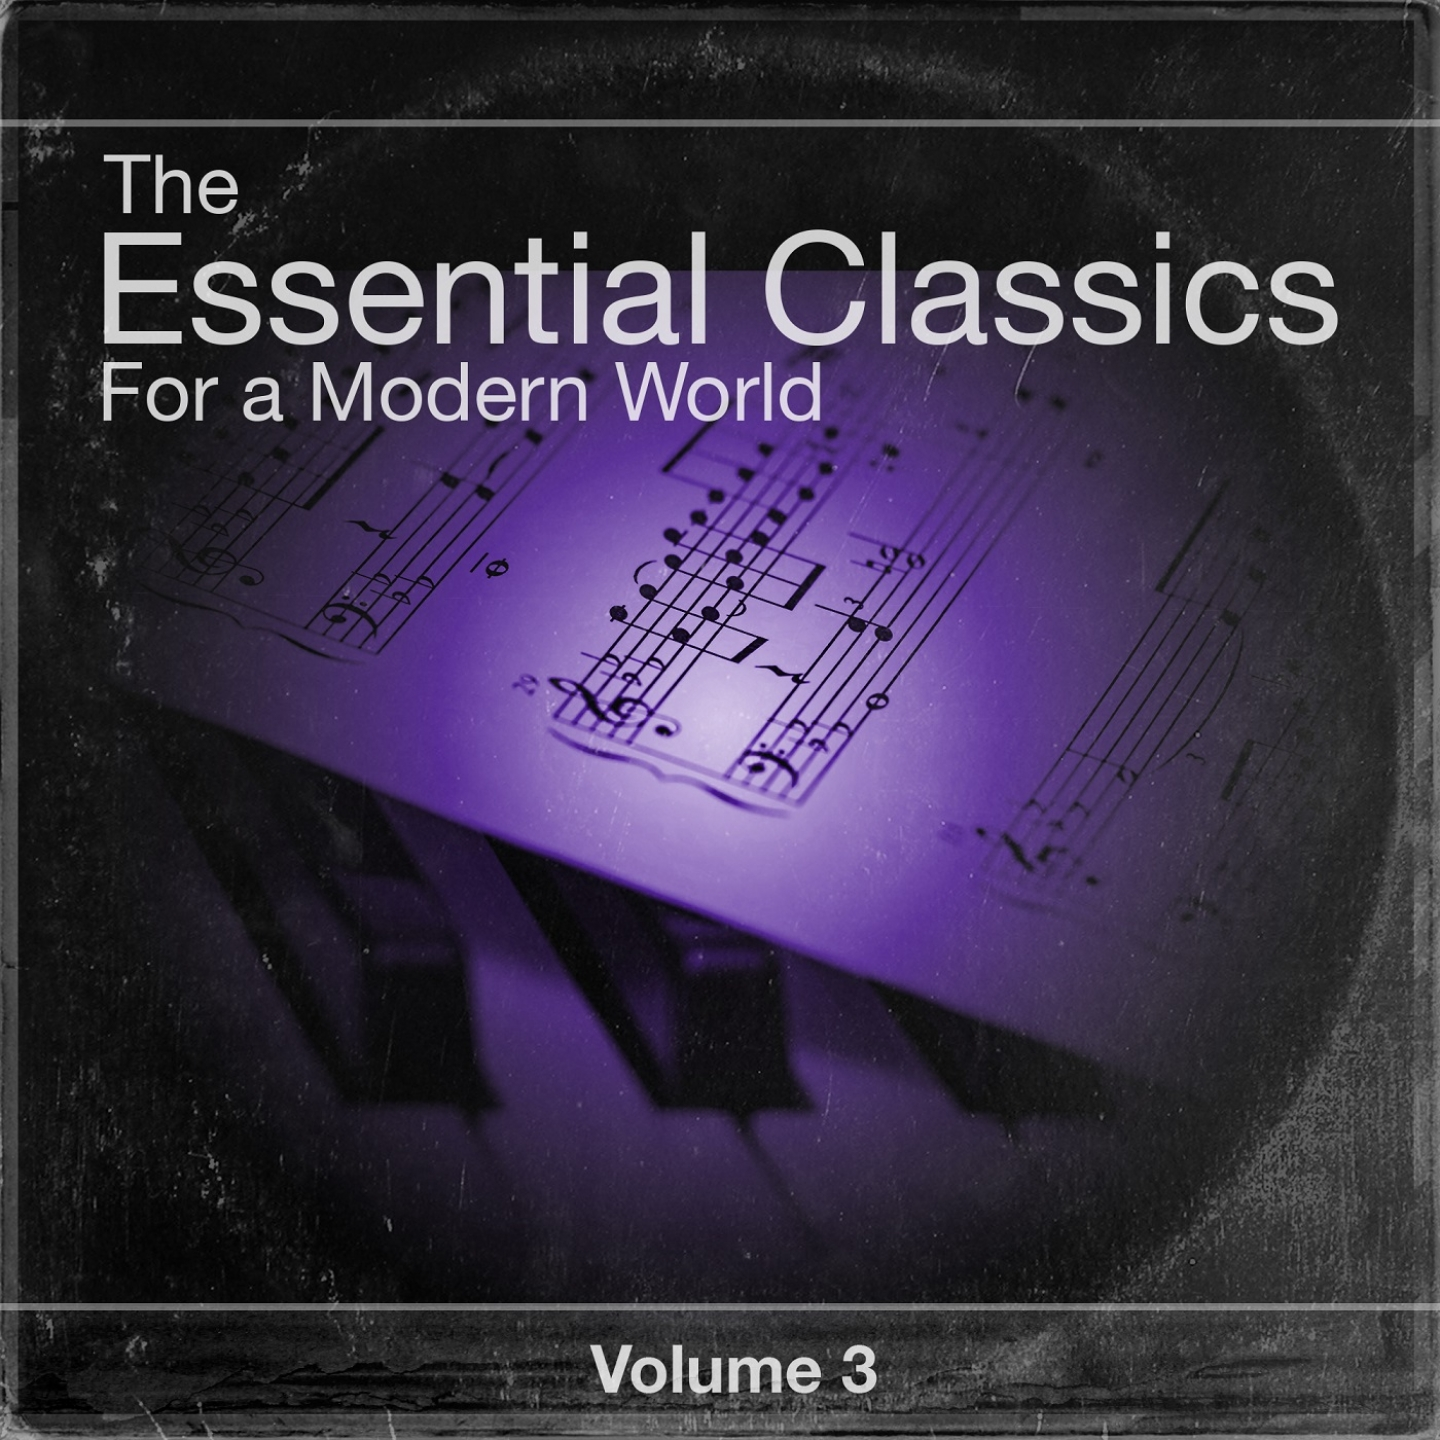 The Essential Classics For a Modern World, Vol. 3